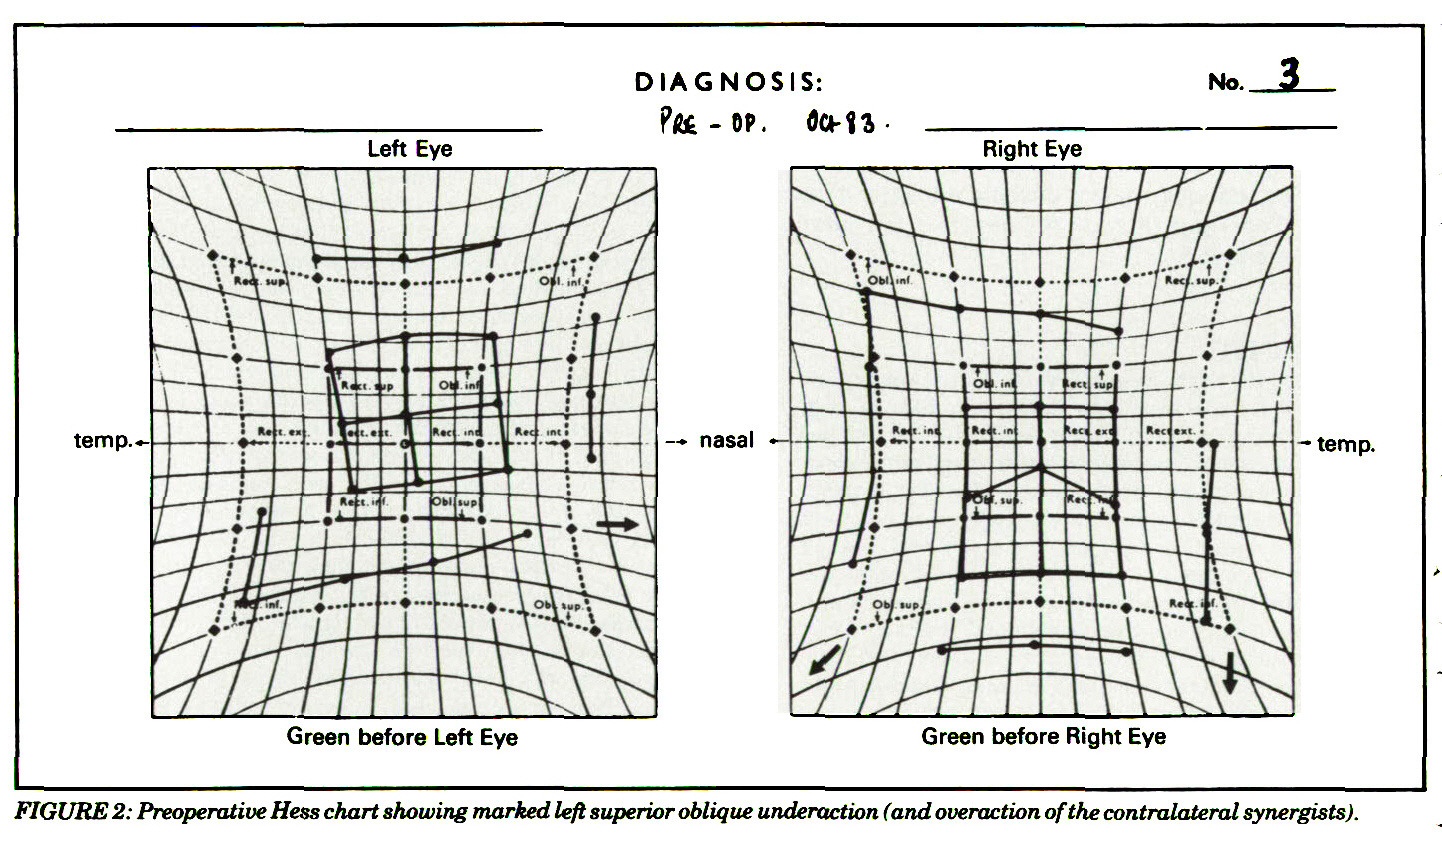 FIGURE 2: Preoperative Hess chart showing marked left superior oblique underaction (and overaction of the contralateral synergists).